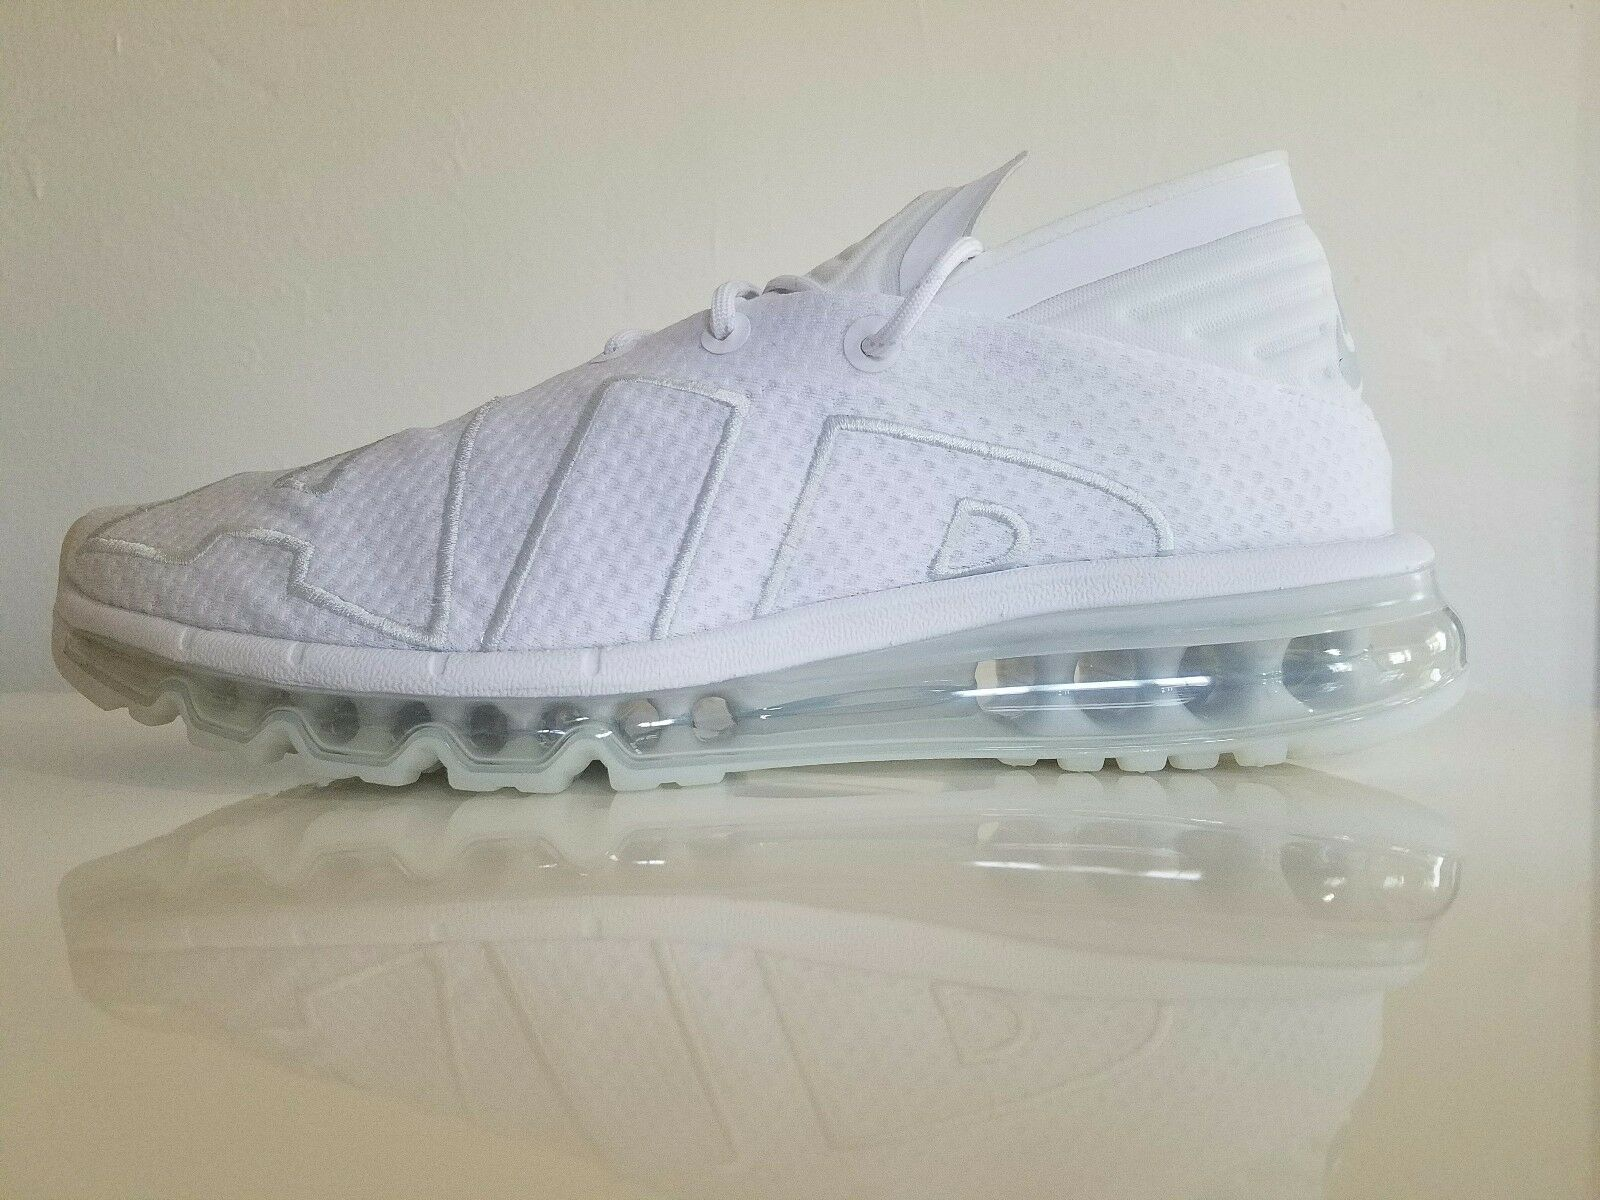 Nike Air Max Flair Running shoes 942236 100 Mens Size 10.5 New In Box MSRP  160